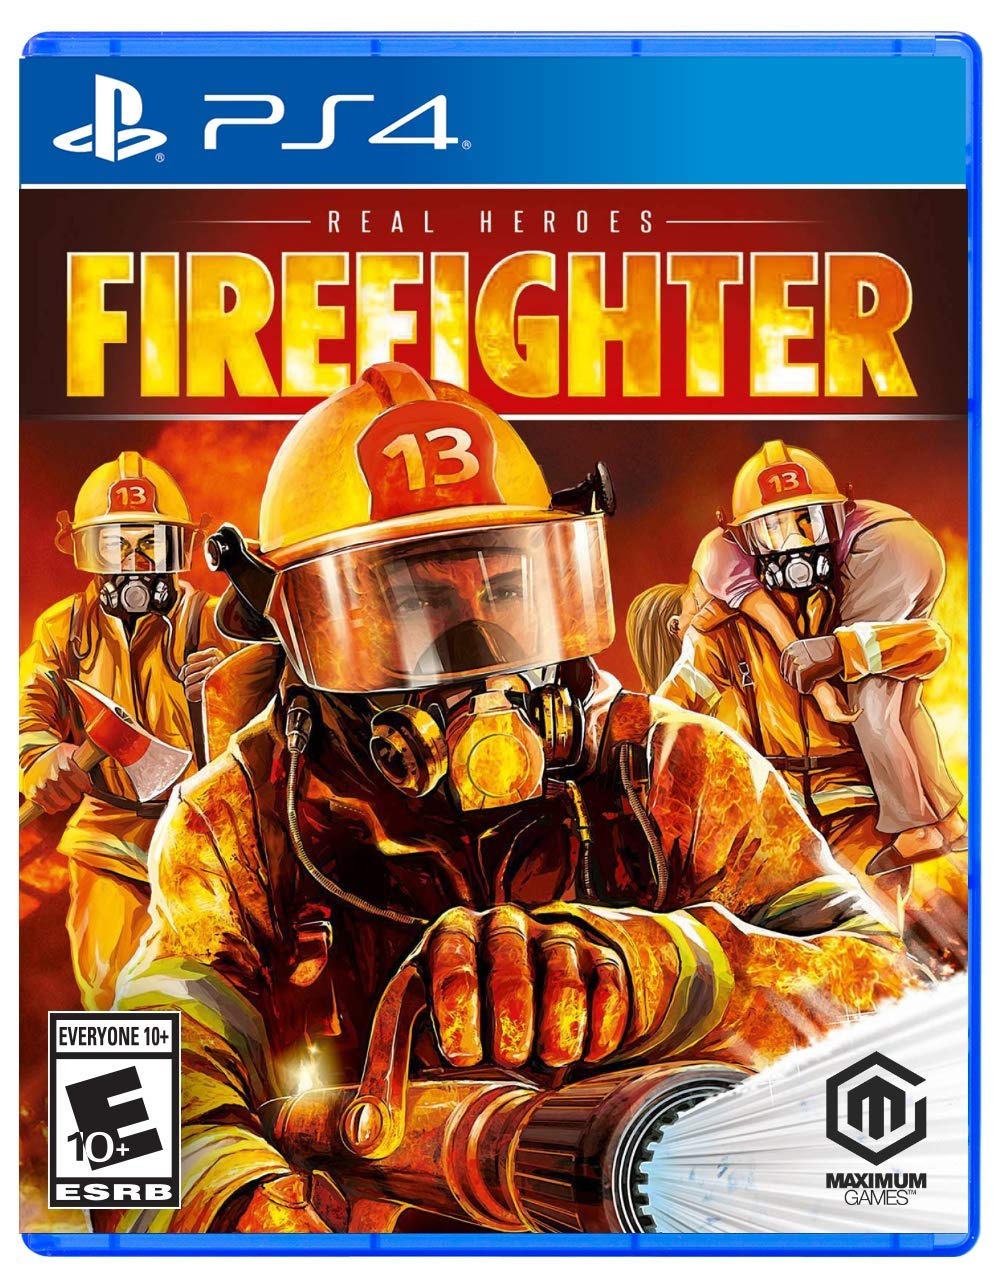 1. Real Heroes Firefighter for PlayStation 4